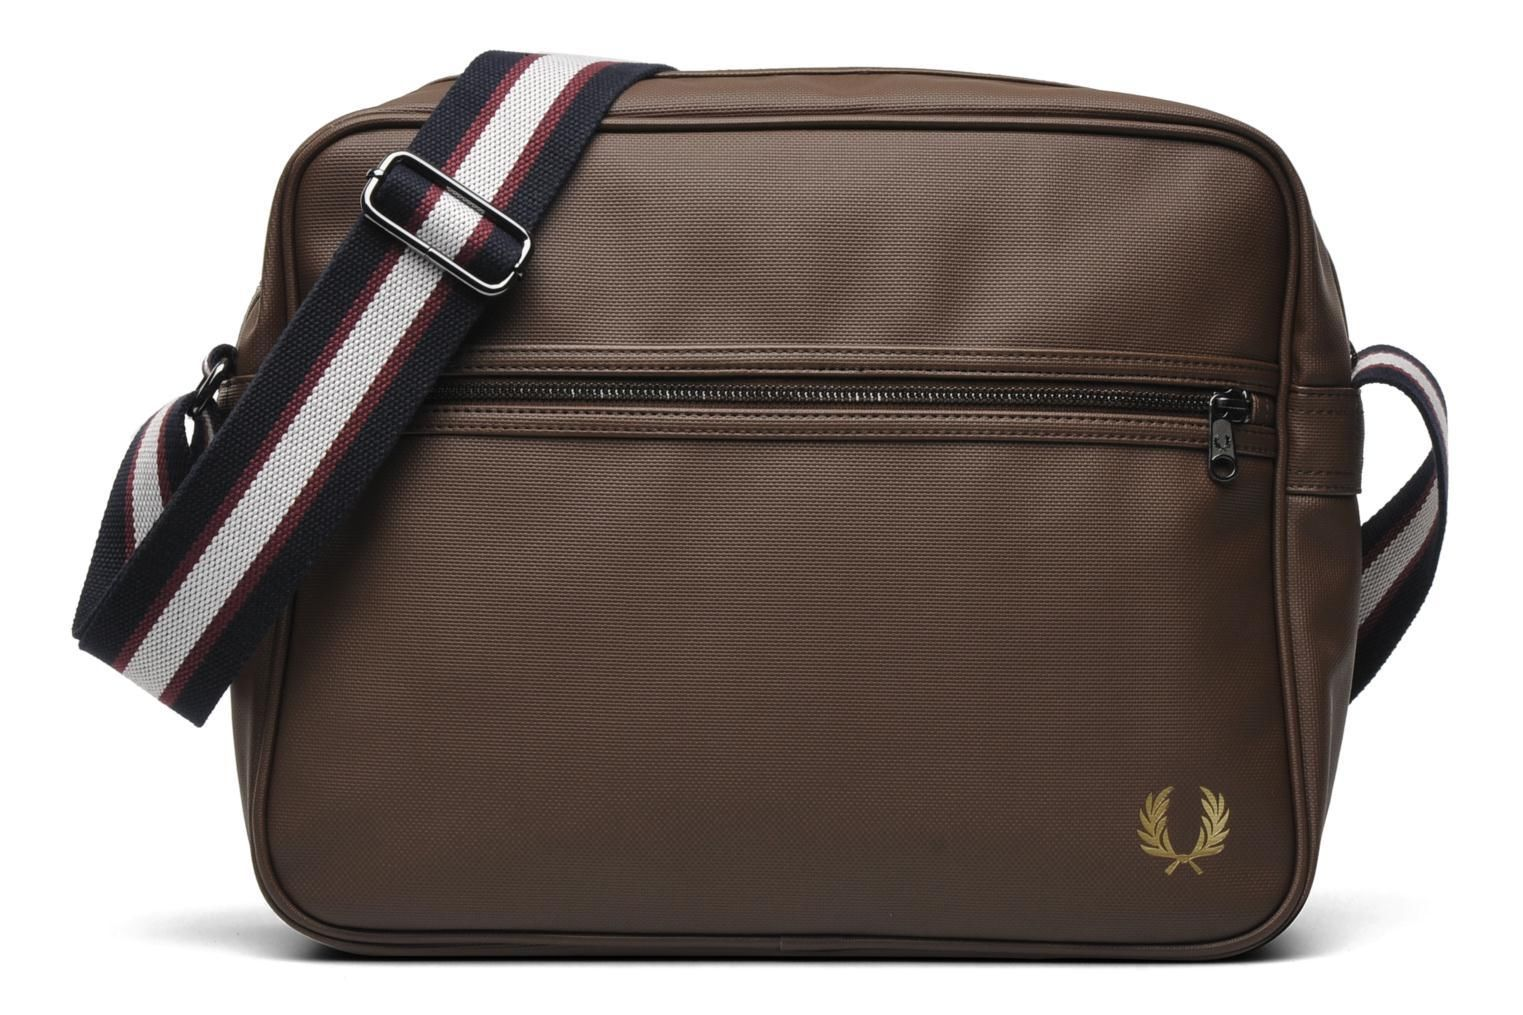 fred perry shoulder bag convertible backpack shoulder bag hobo shoulder bag